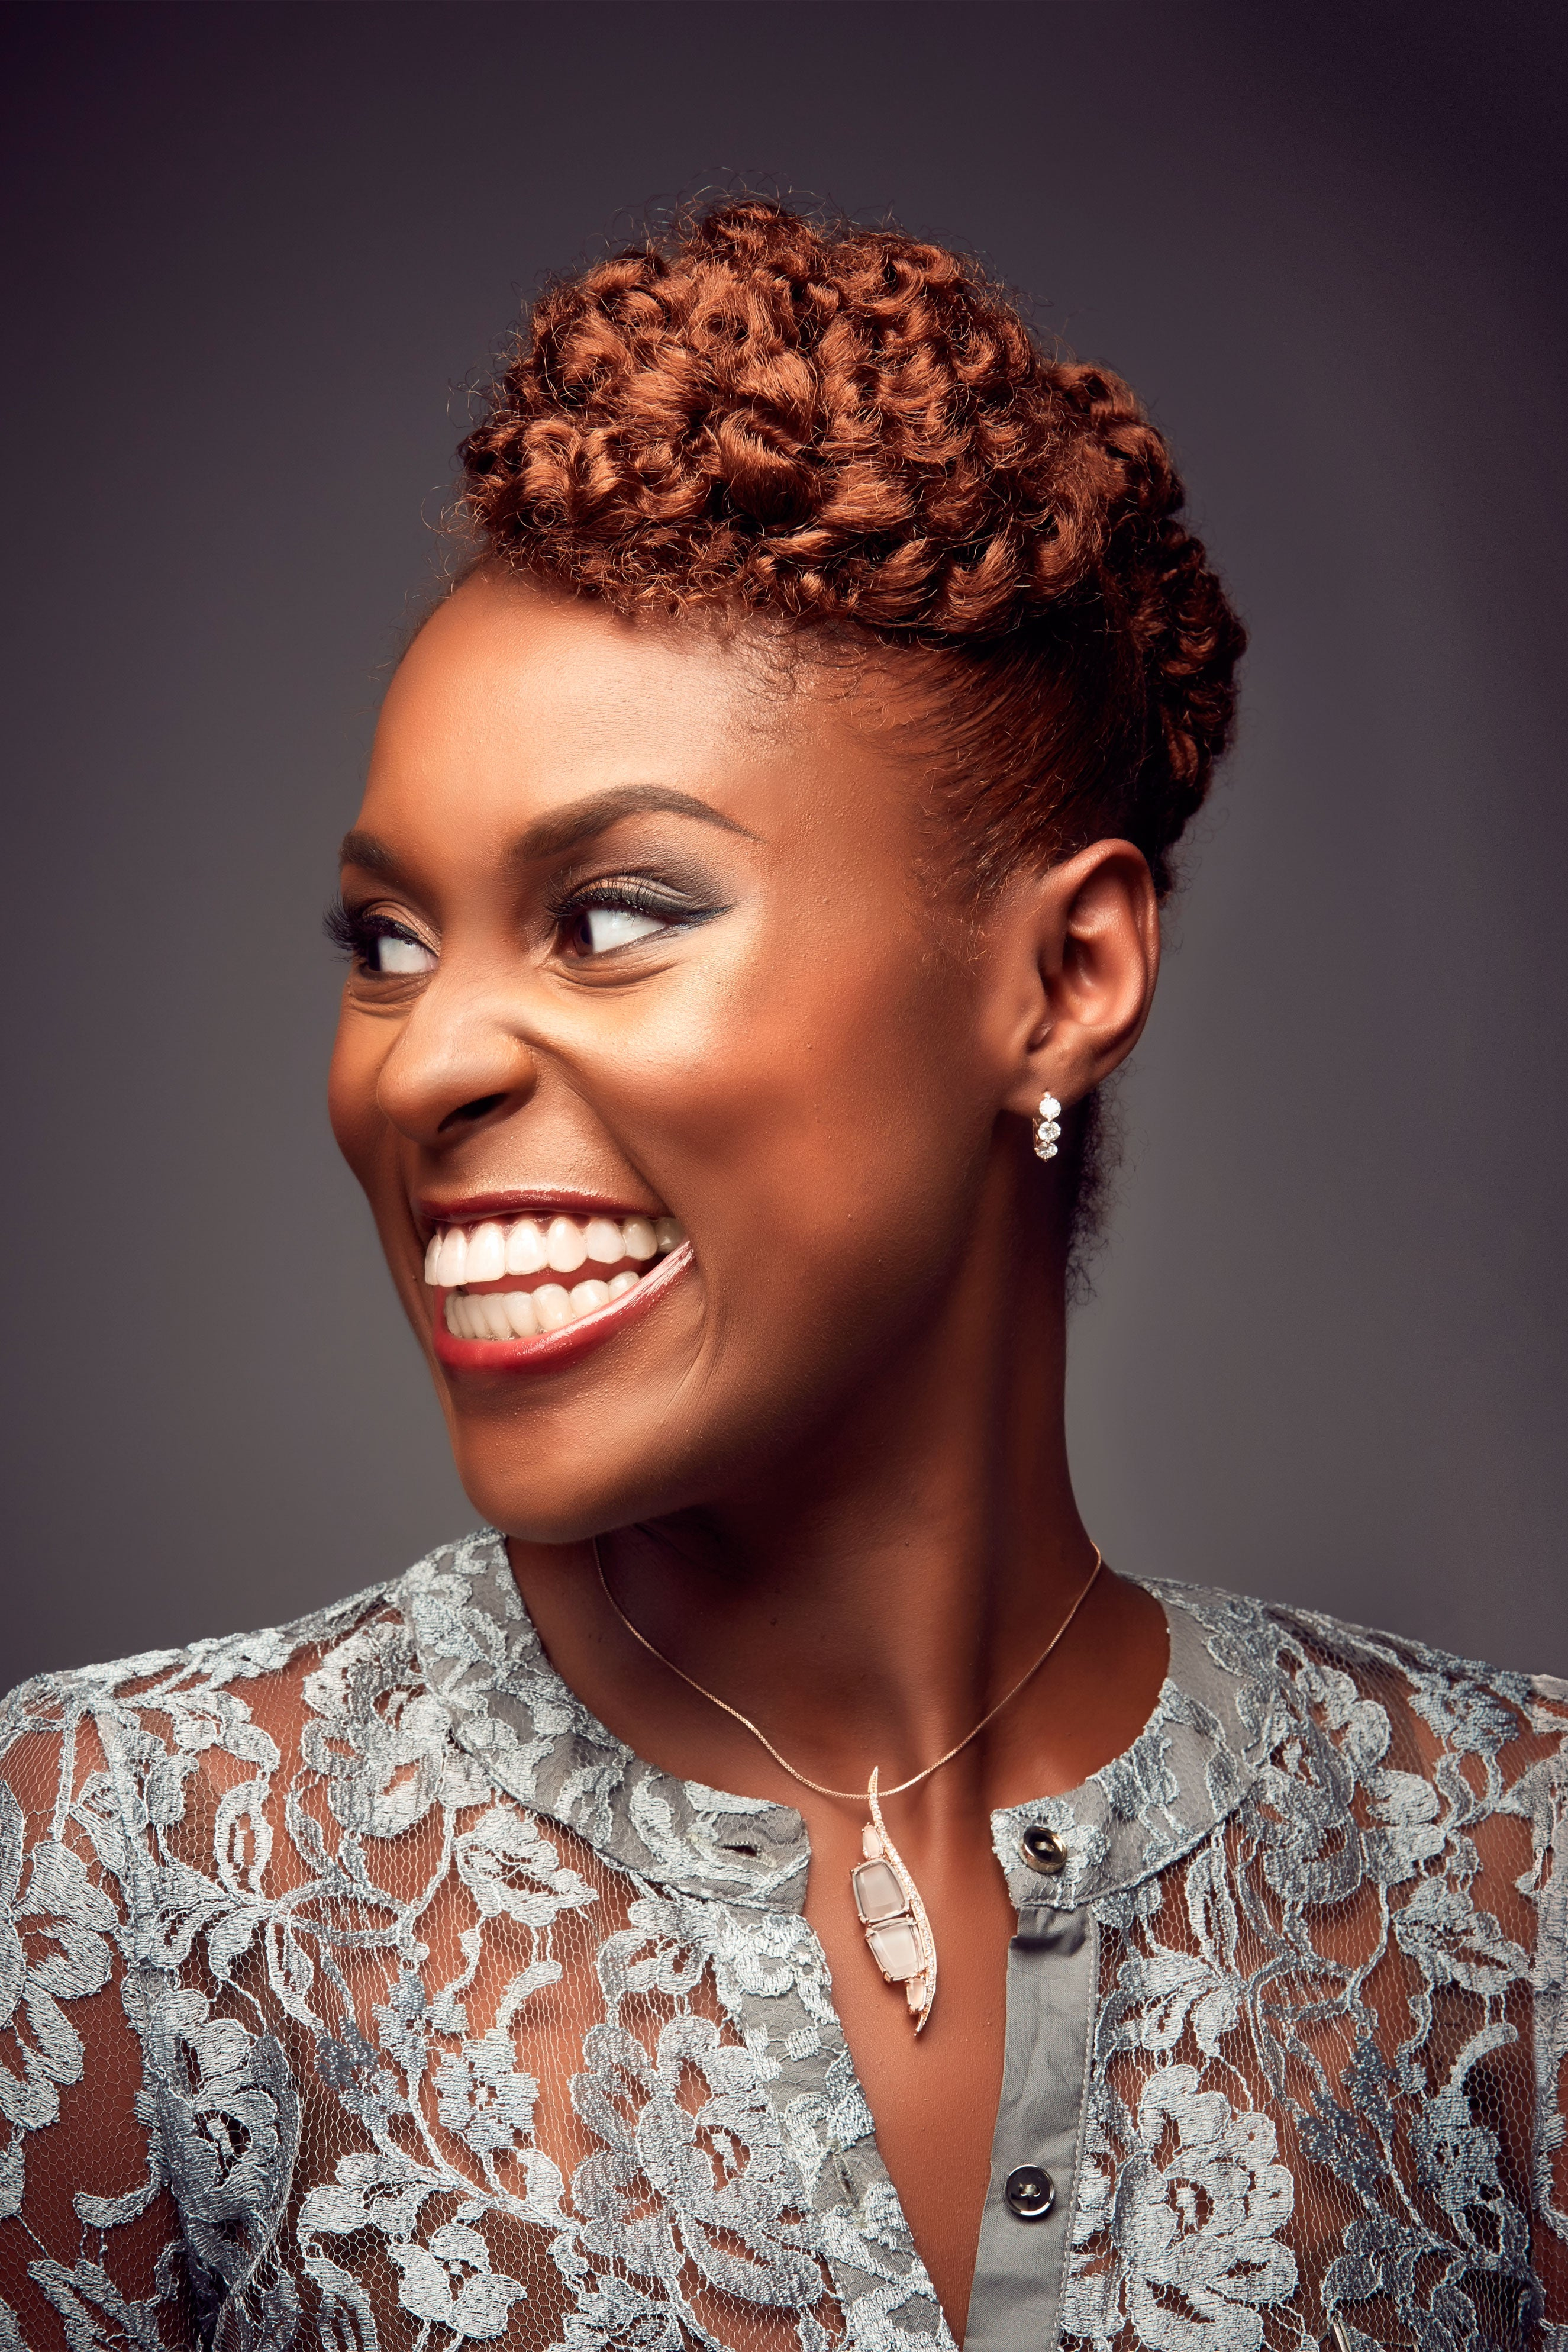 'A SIP:' Issa Rae Gets The Tea From All Her Hollywood Friends In This New YouTube Series